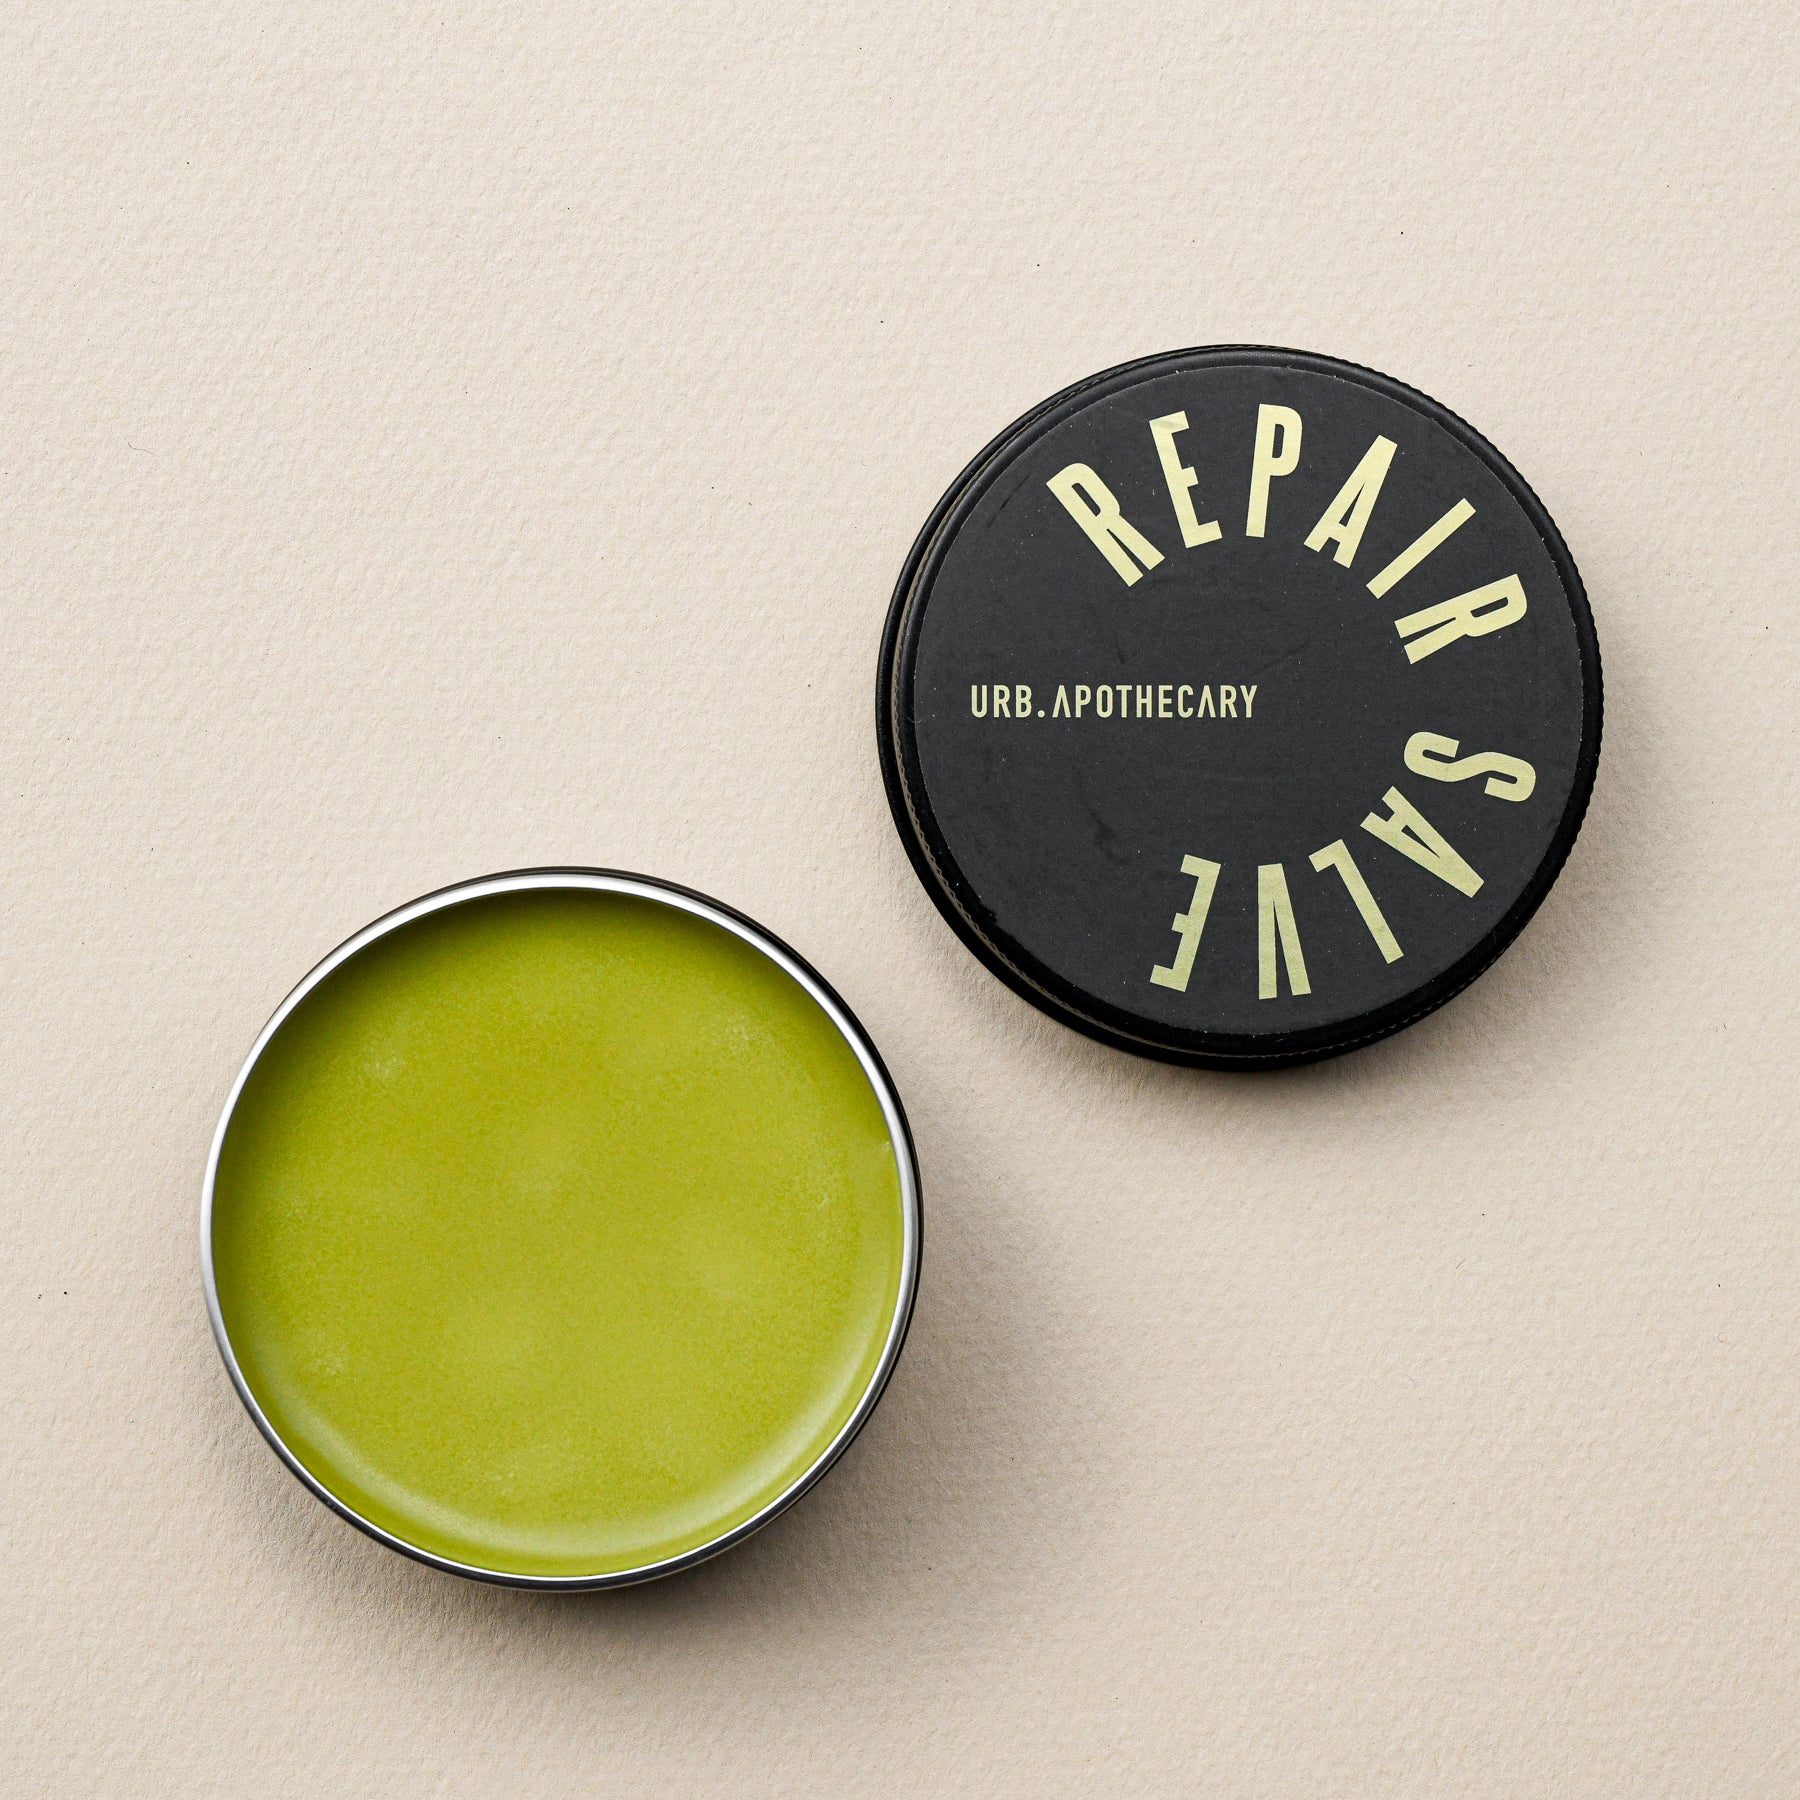 Repair Salve from Urb Apothecary